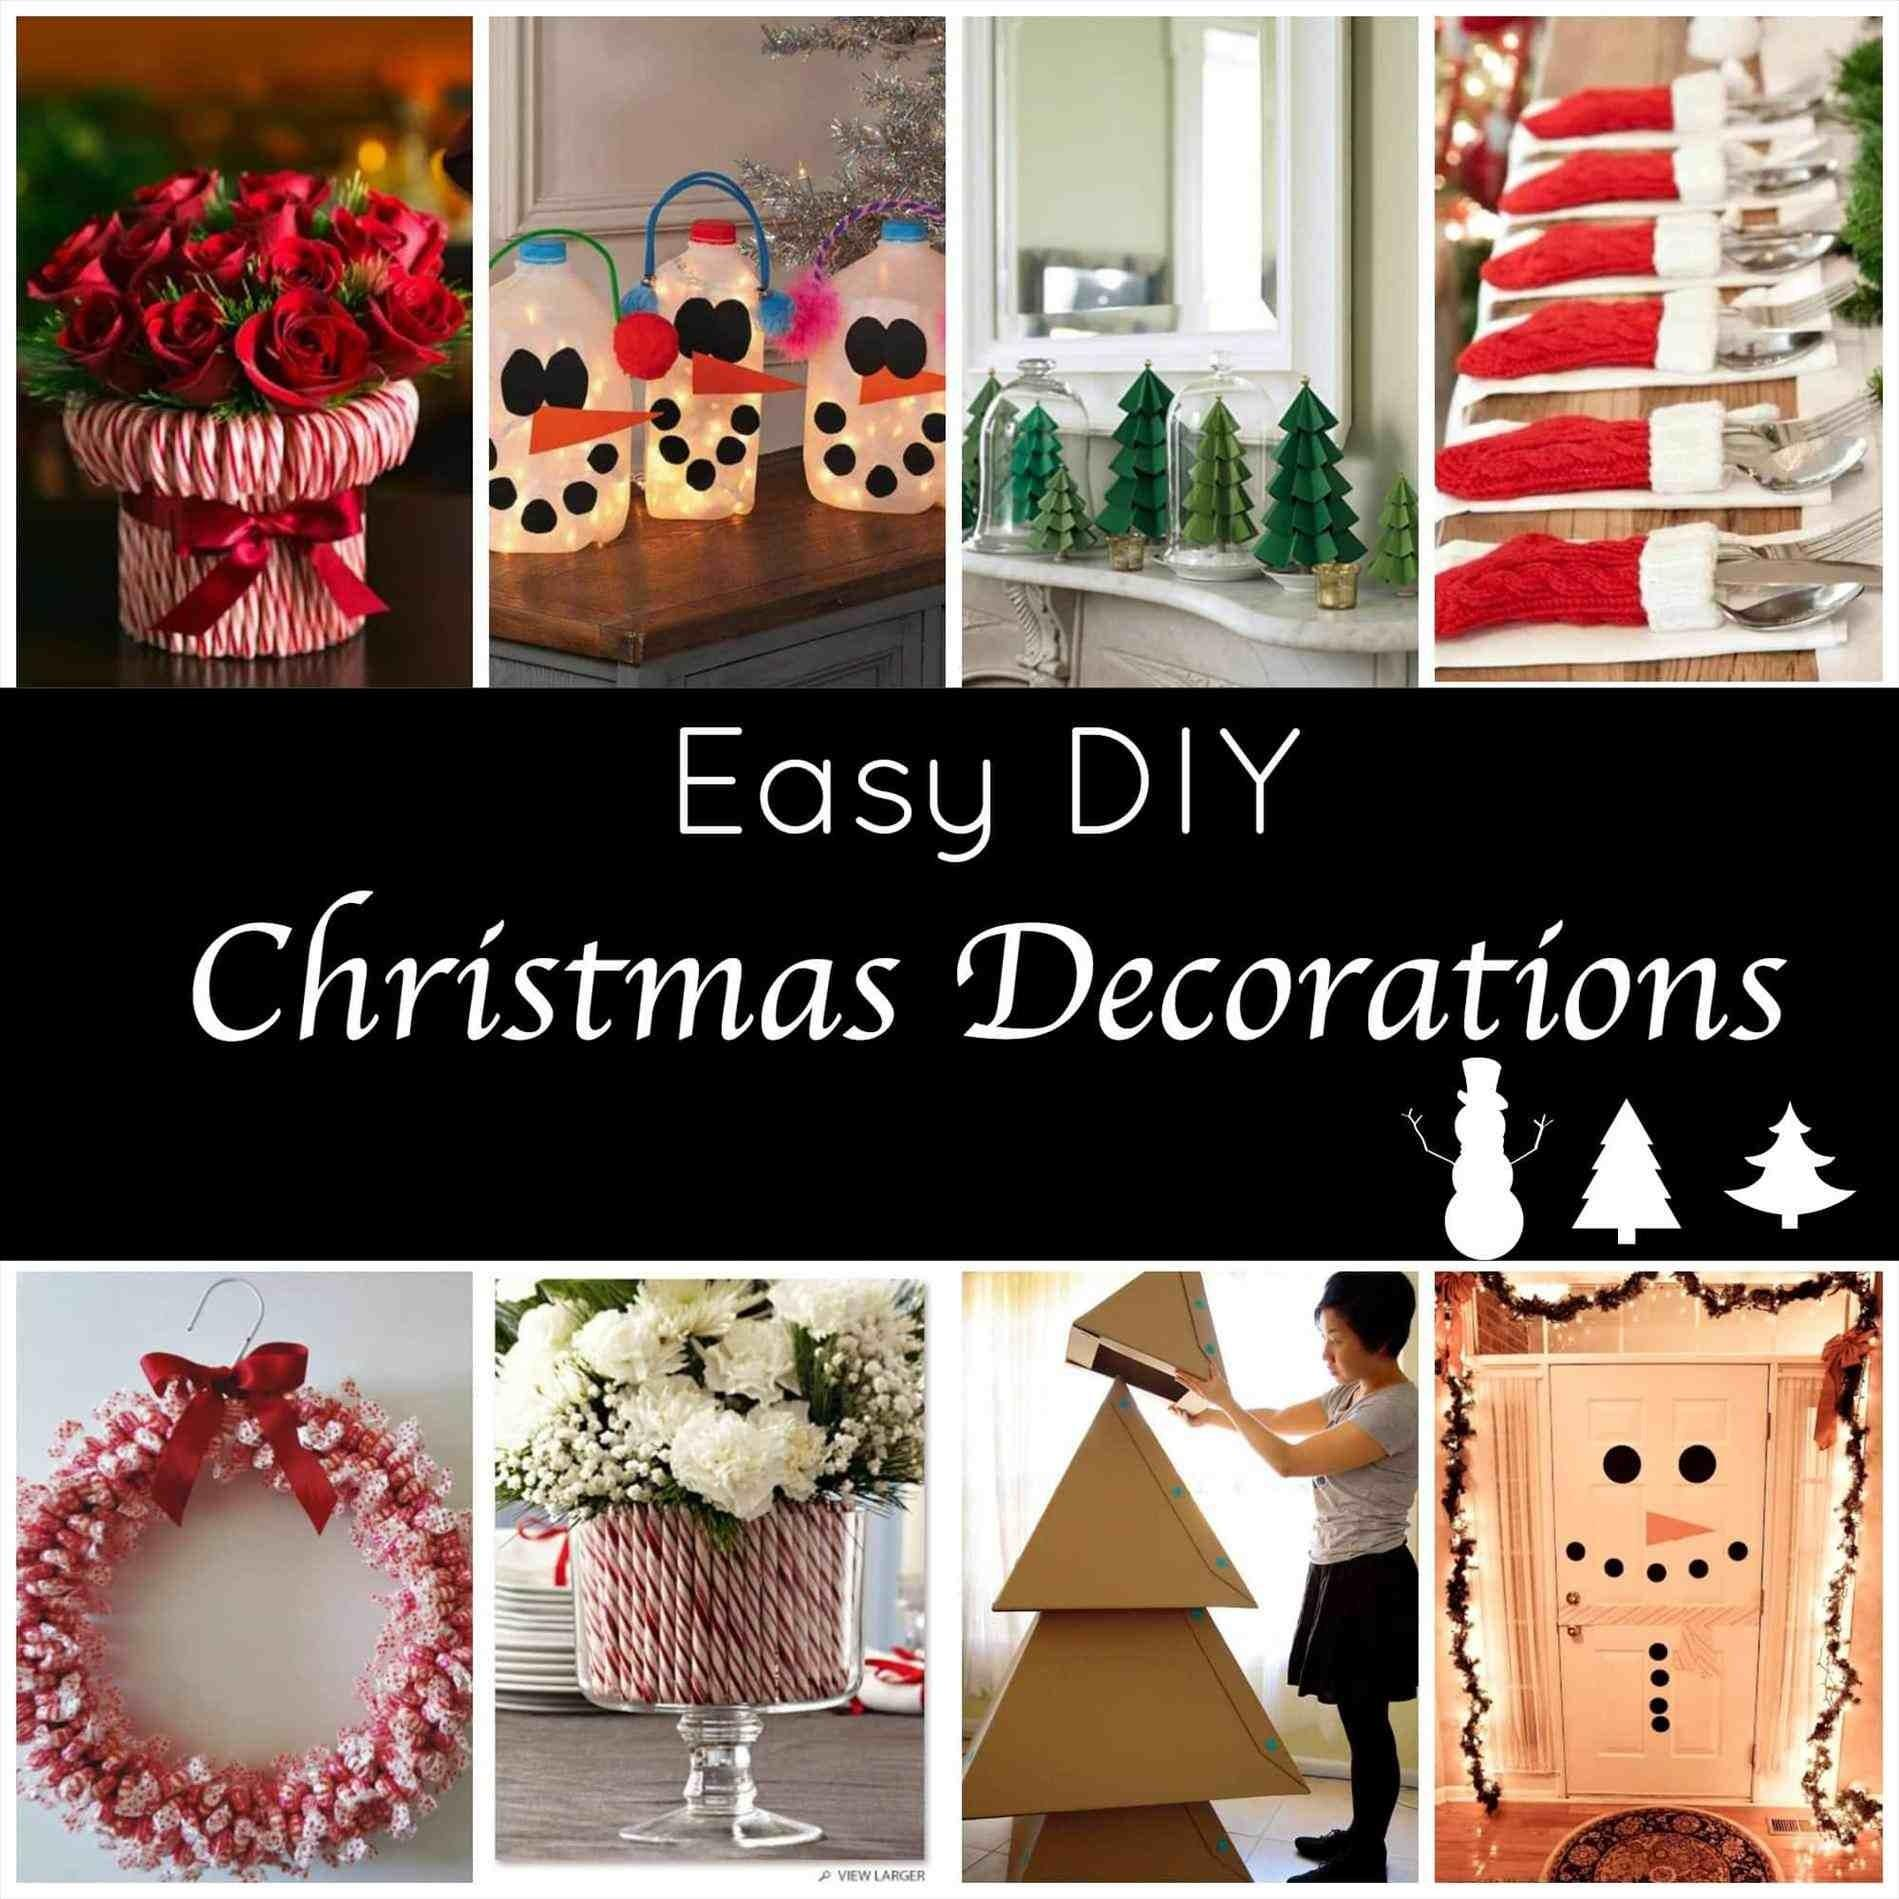 Easy Diy Christmas Party Decorations Temasistemi